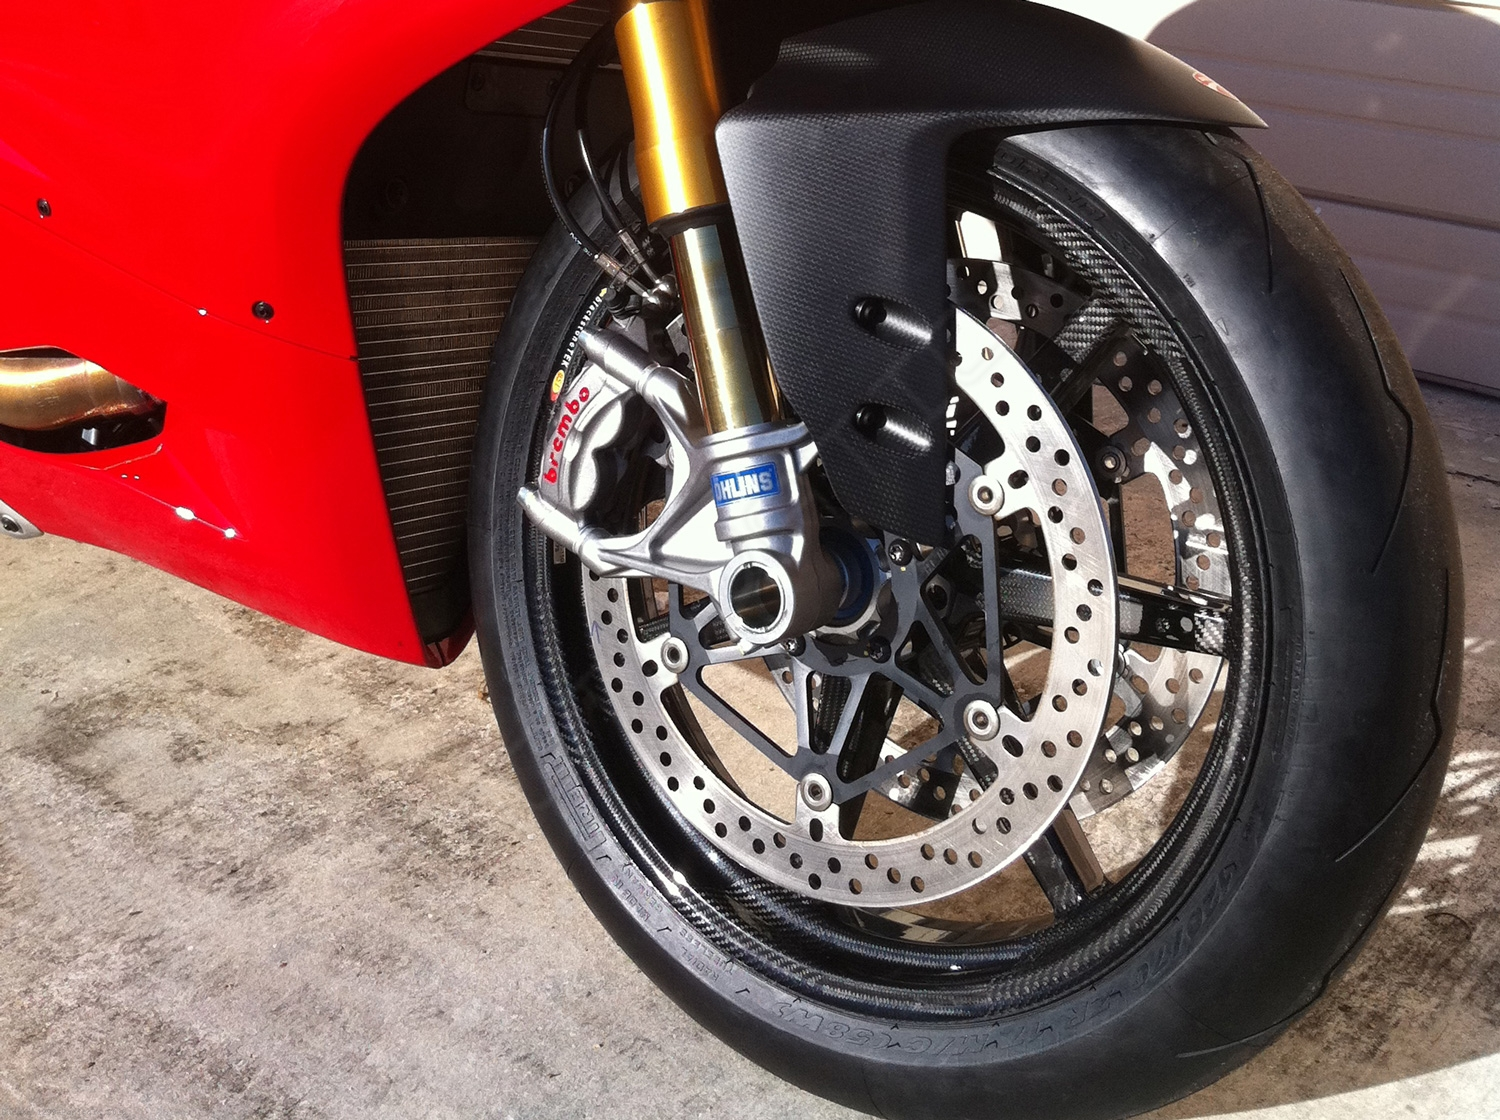 7 Spoke Carbon Fiber Wheel Set By Bst Ducati 1299 Panigale 2016